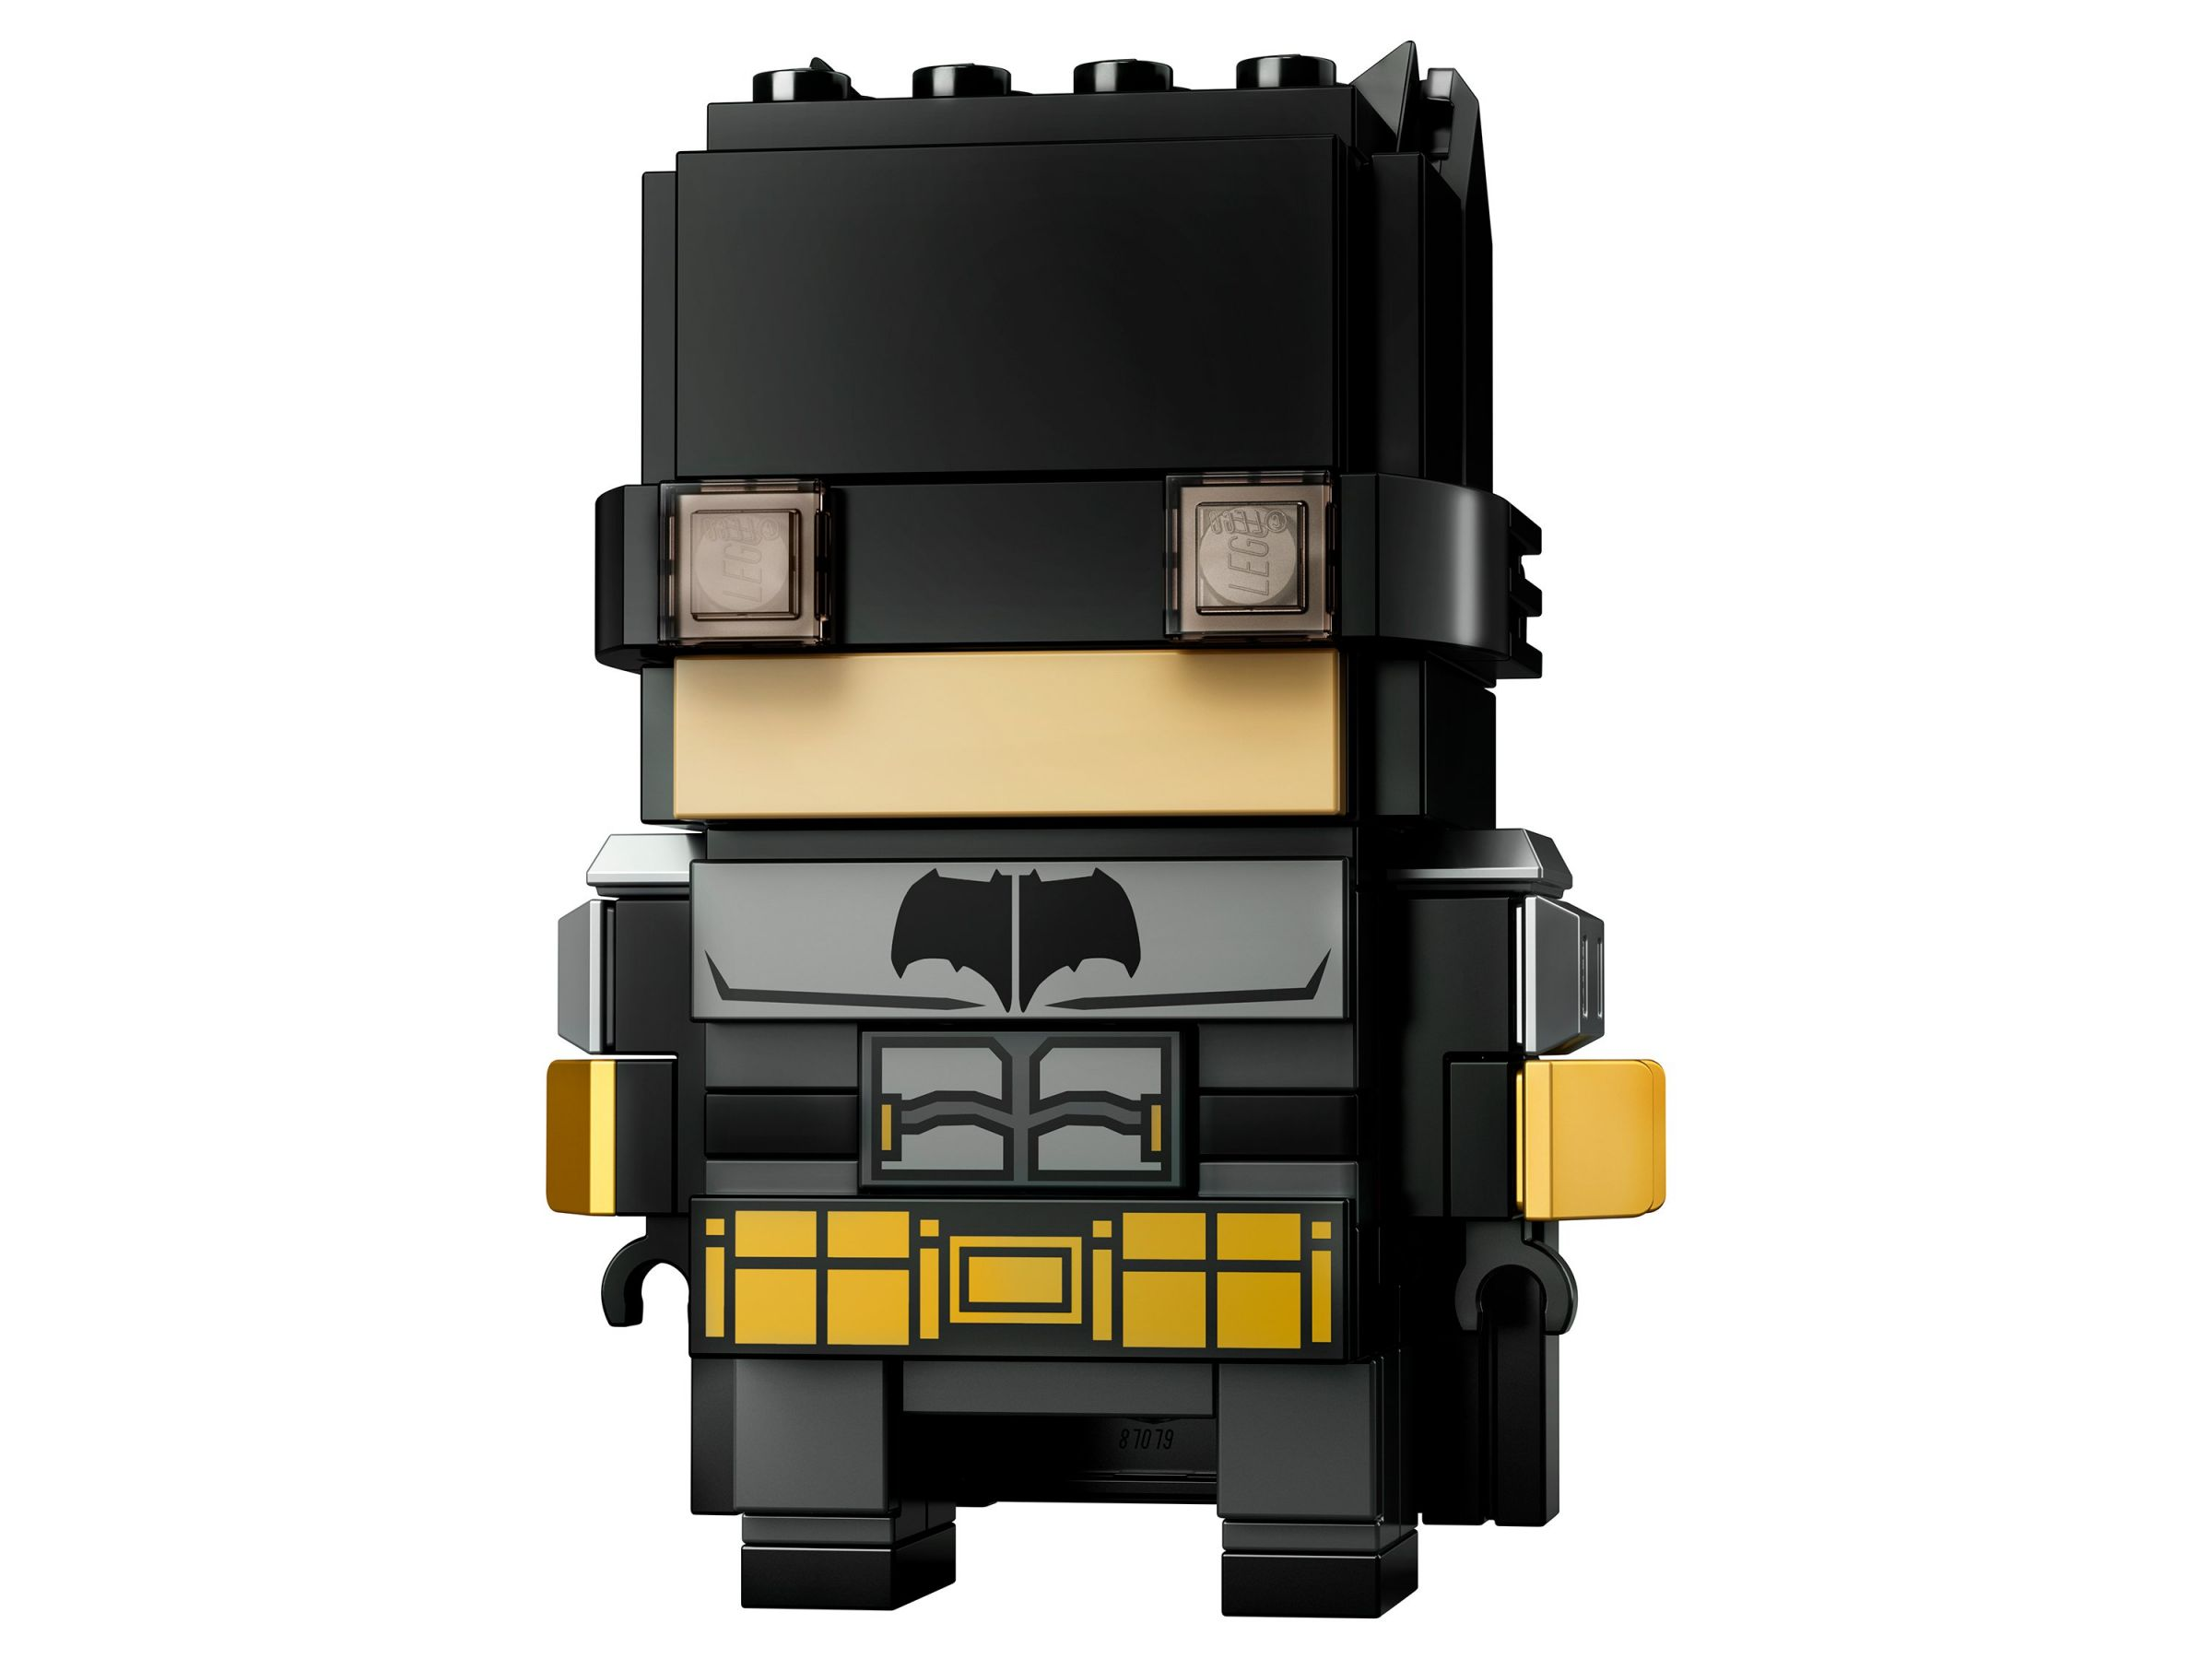 LEGO BrickHeadz 41610 Tactical Batman™ & Superman™ LEGO_BrickHeadz_41610_Tactical_Batman_Superman_img01.jpg